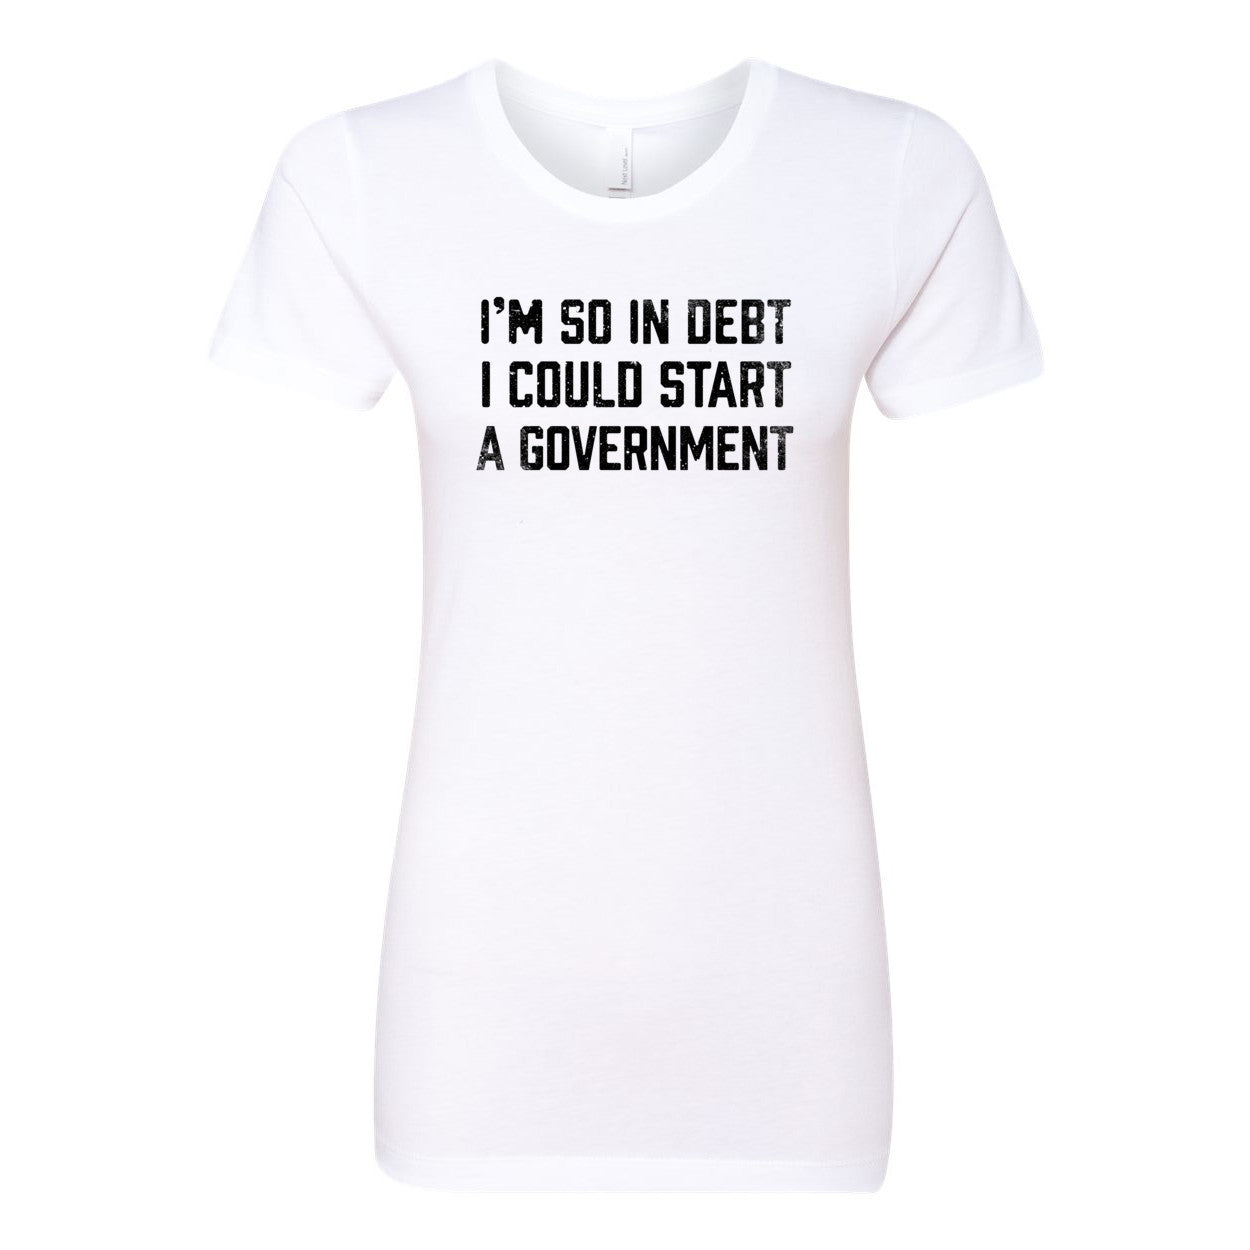 23e055e5 I'm So In Debt I Could Start A Government Men's Tee - Liberty Maniacs